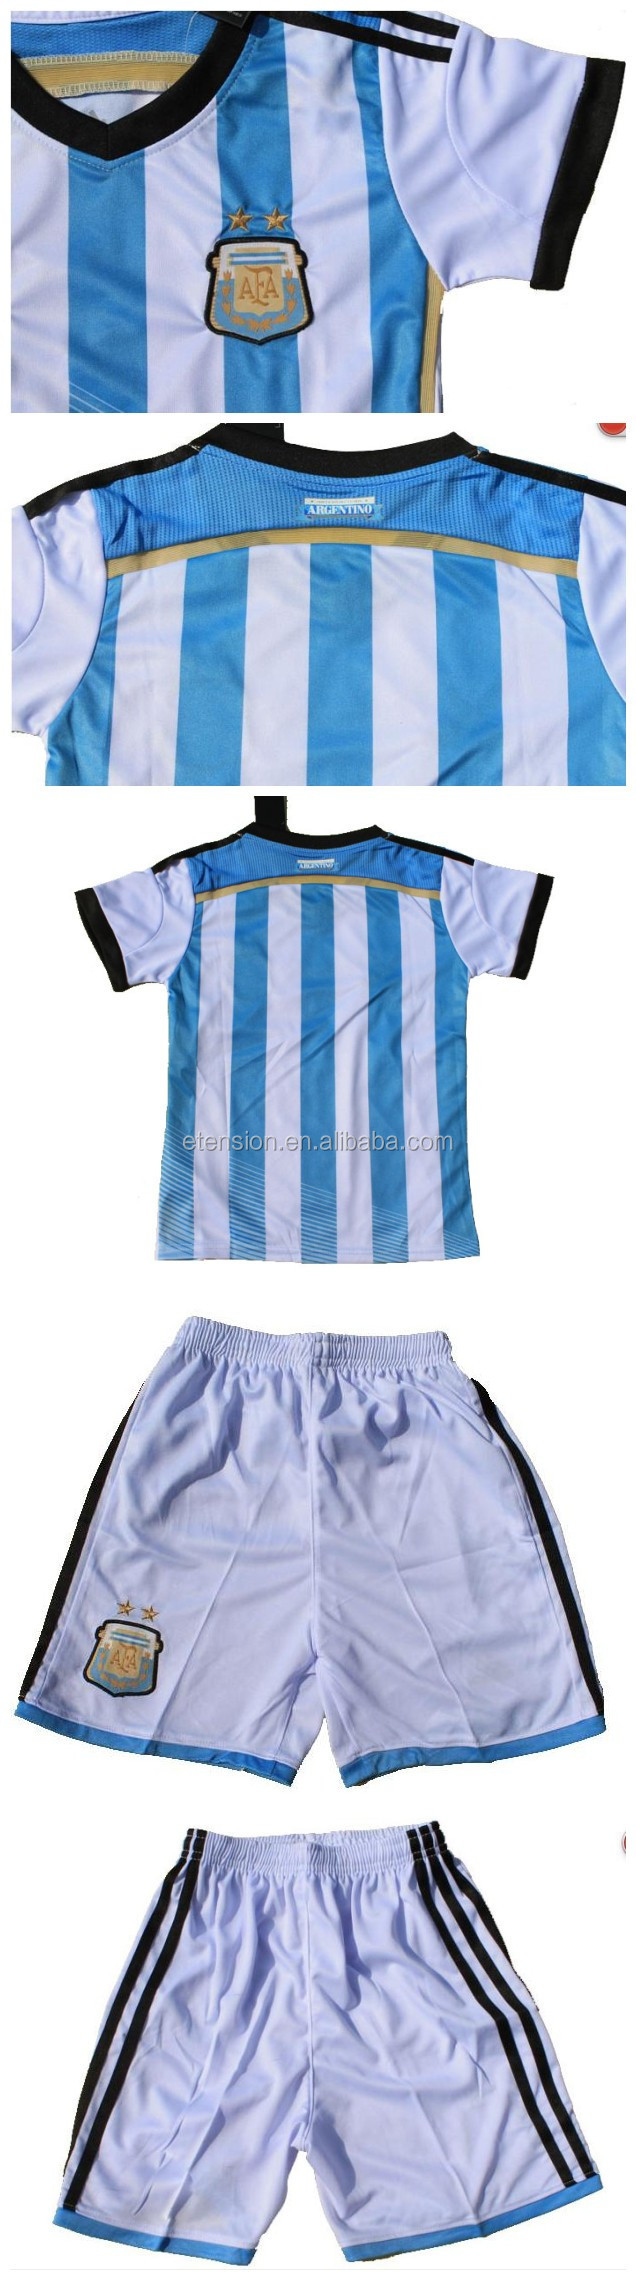 Boy's Jersey football sports clothing/Top sale 2014 world cup kids soccer jersey suit